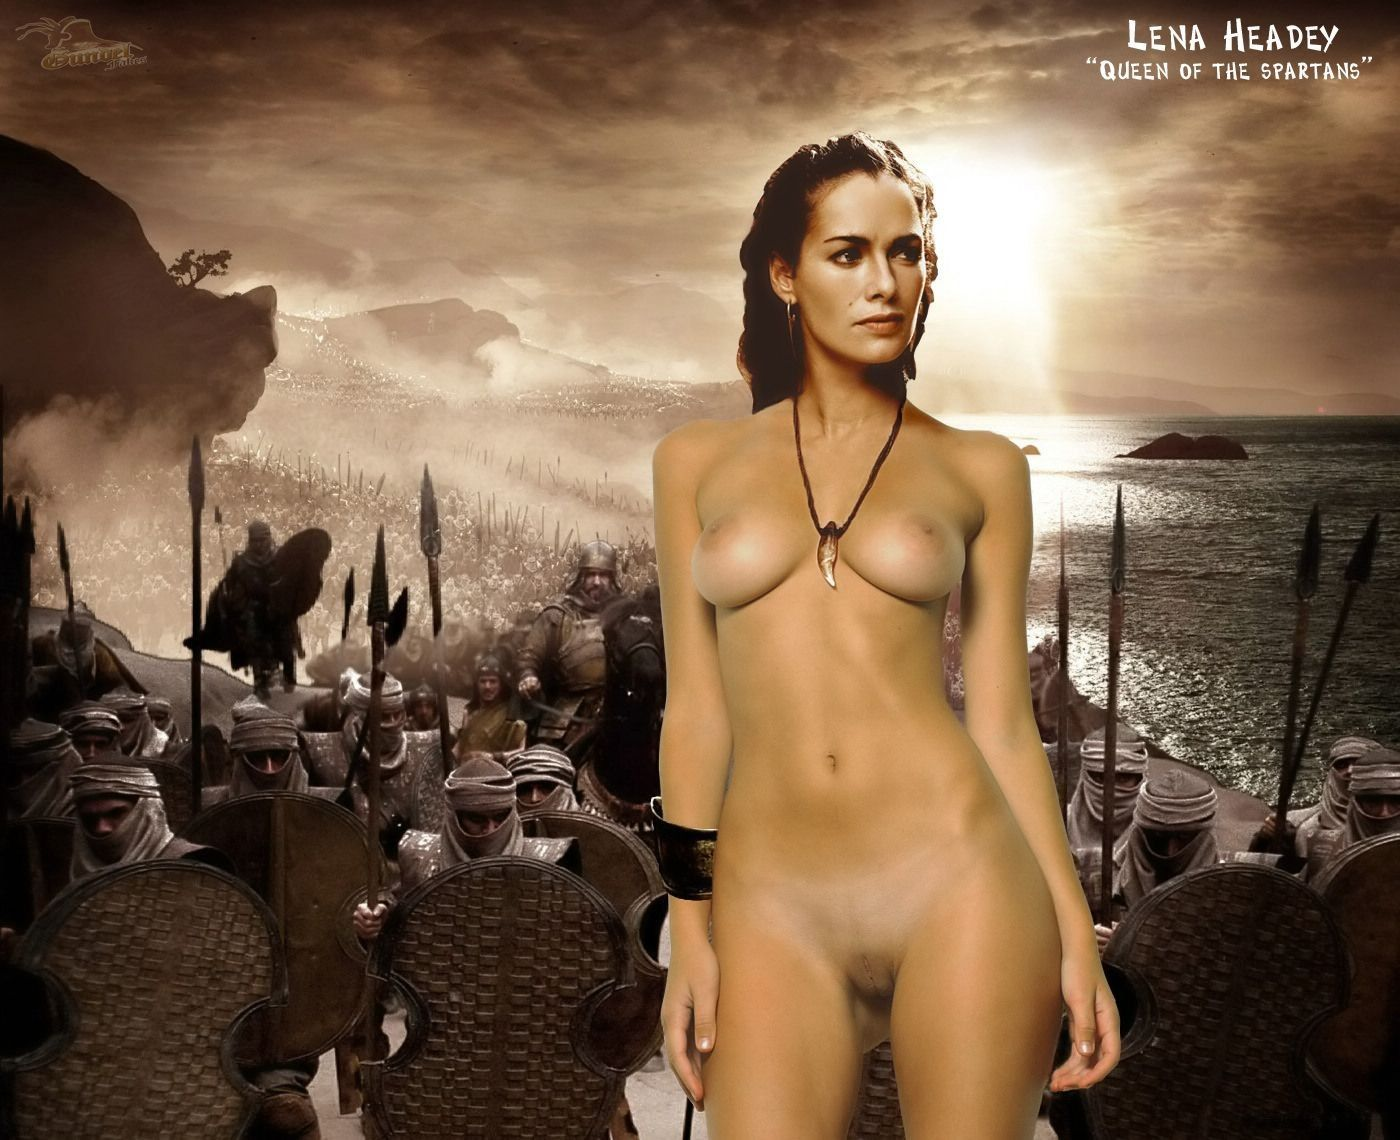 lena headey nude | lena headey best celebrity nude fakes! sex game